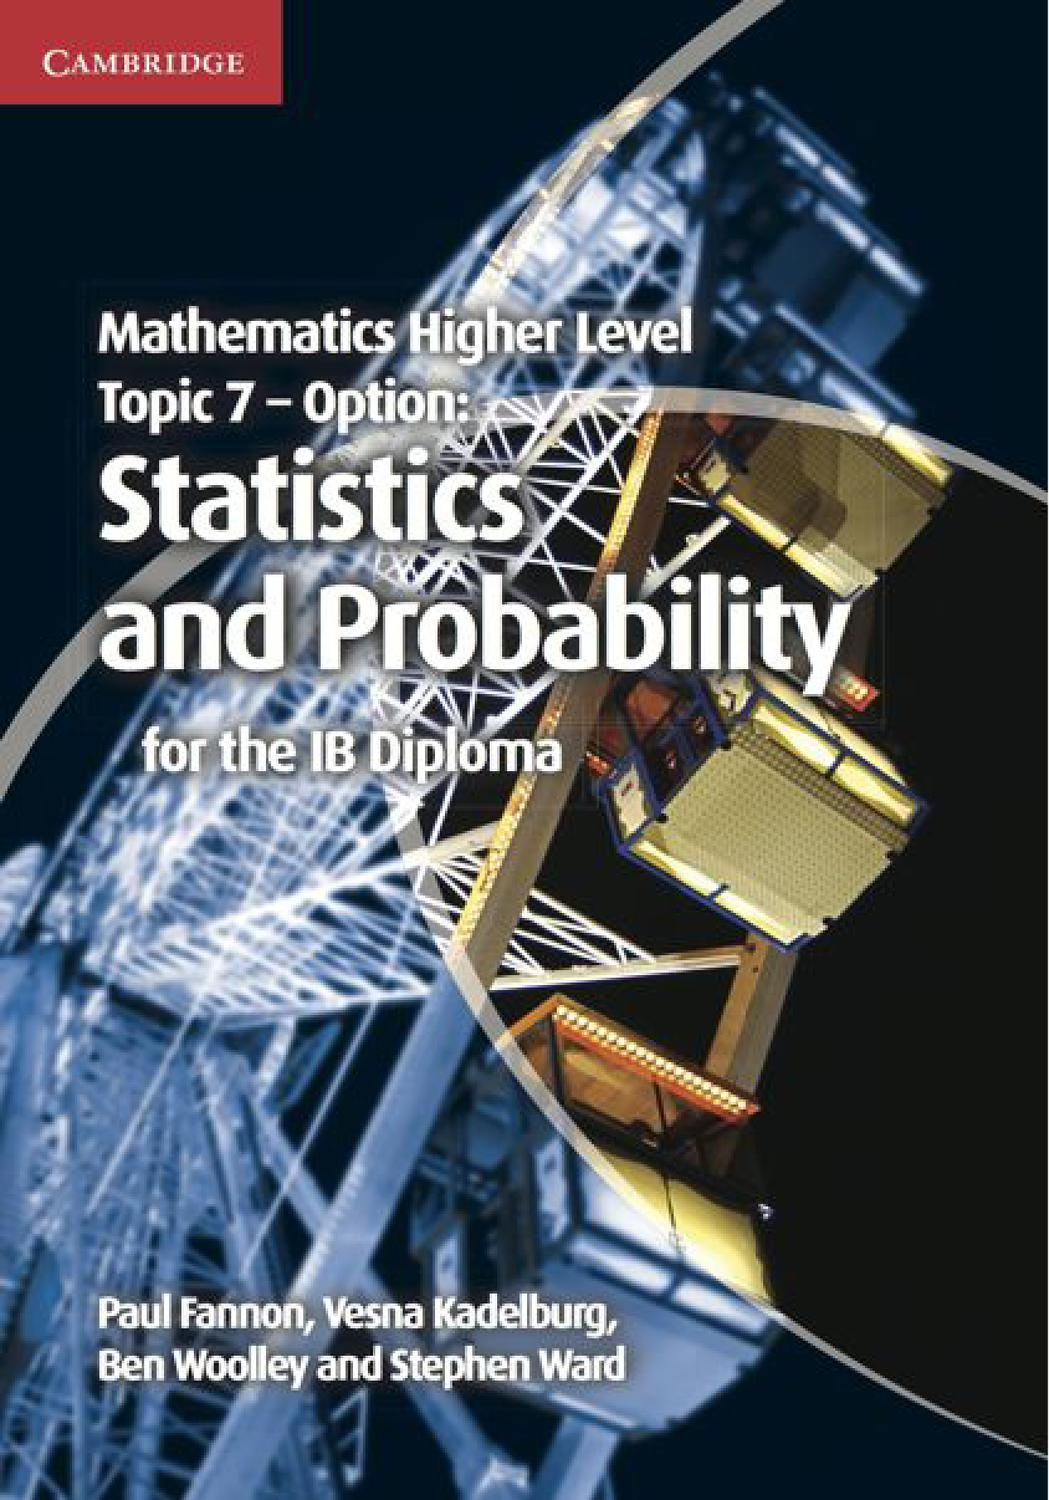 Mathematics for the ib diploma higher level 2 by douglas quadling